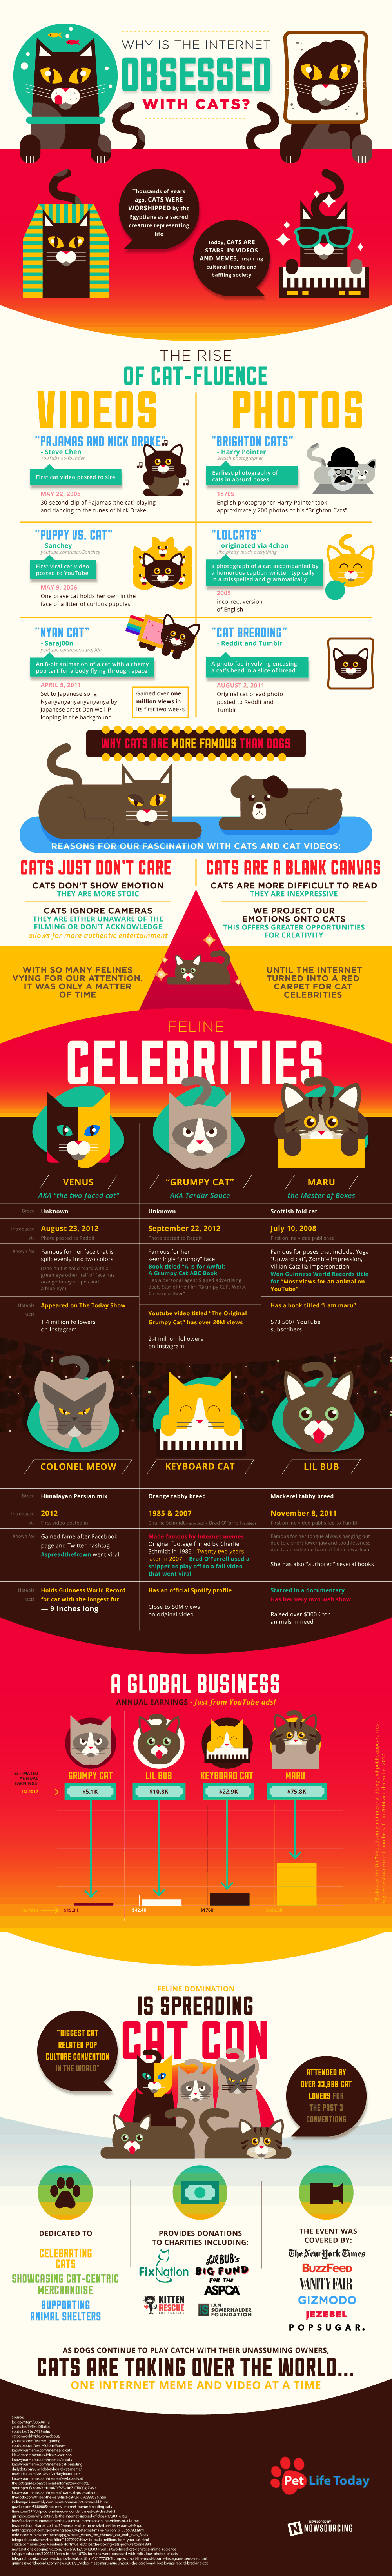 https://petlifetoday.com/wp-content/uploads/2017/12/internet-is-obsessed-with-cats-infographic.png